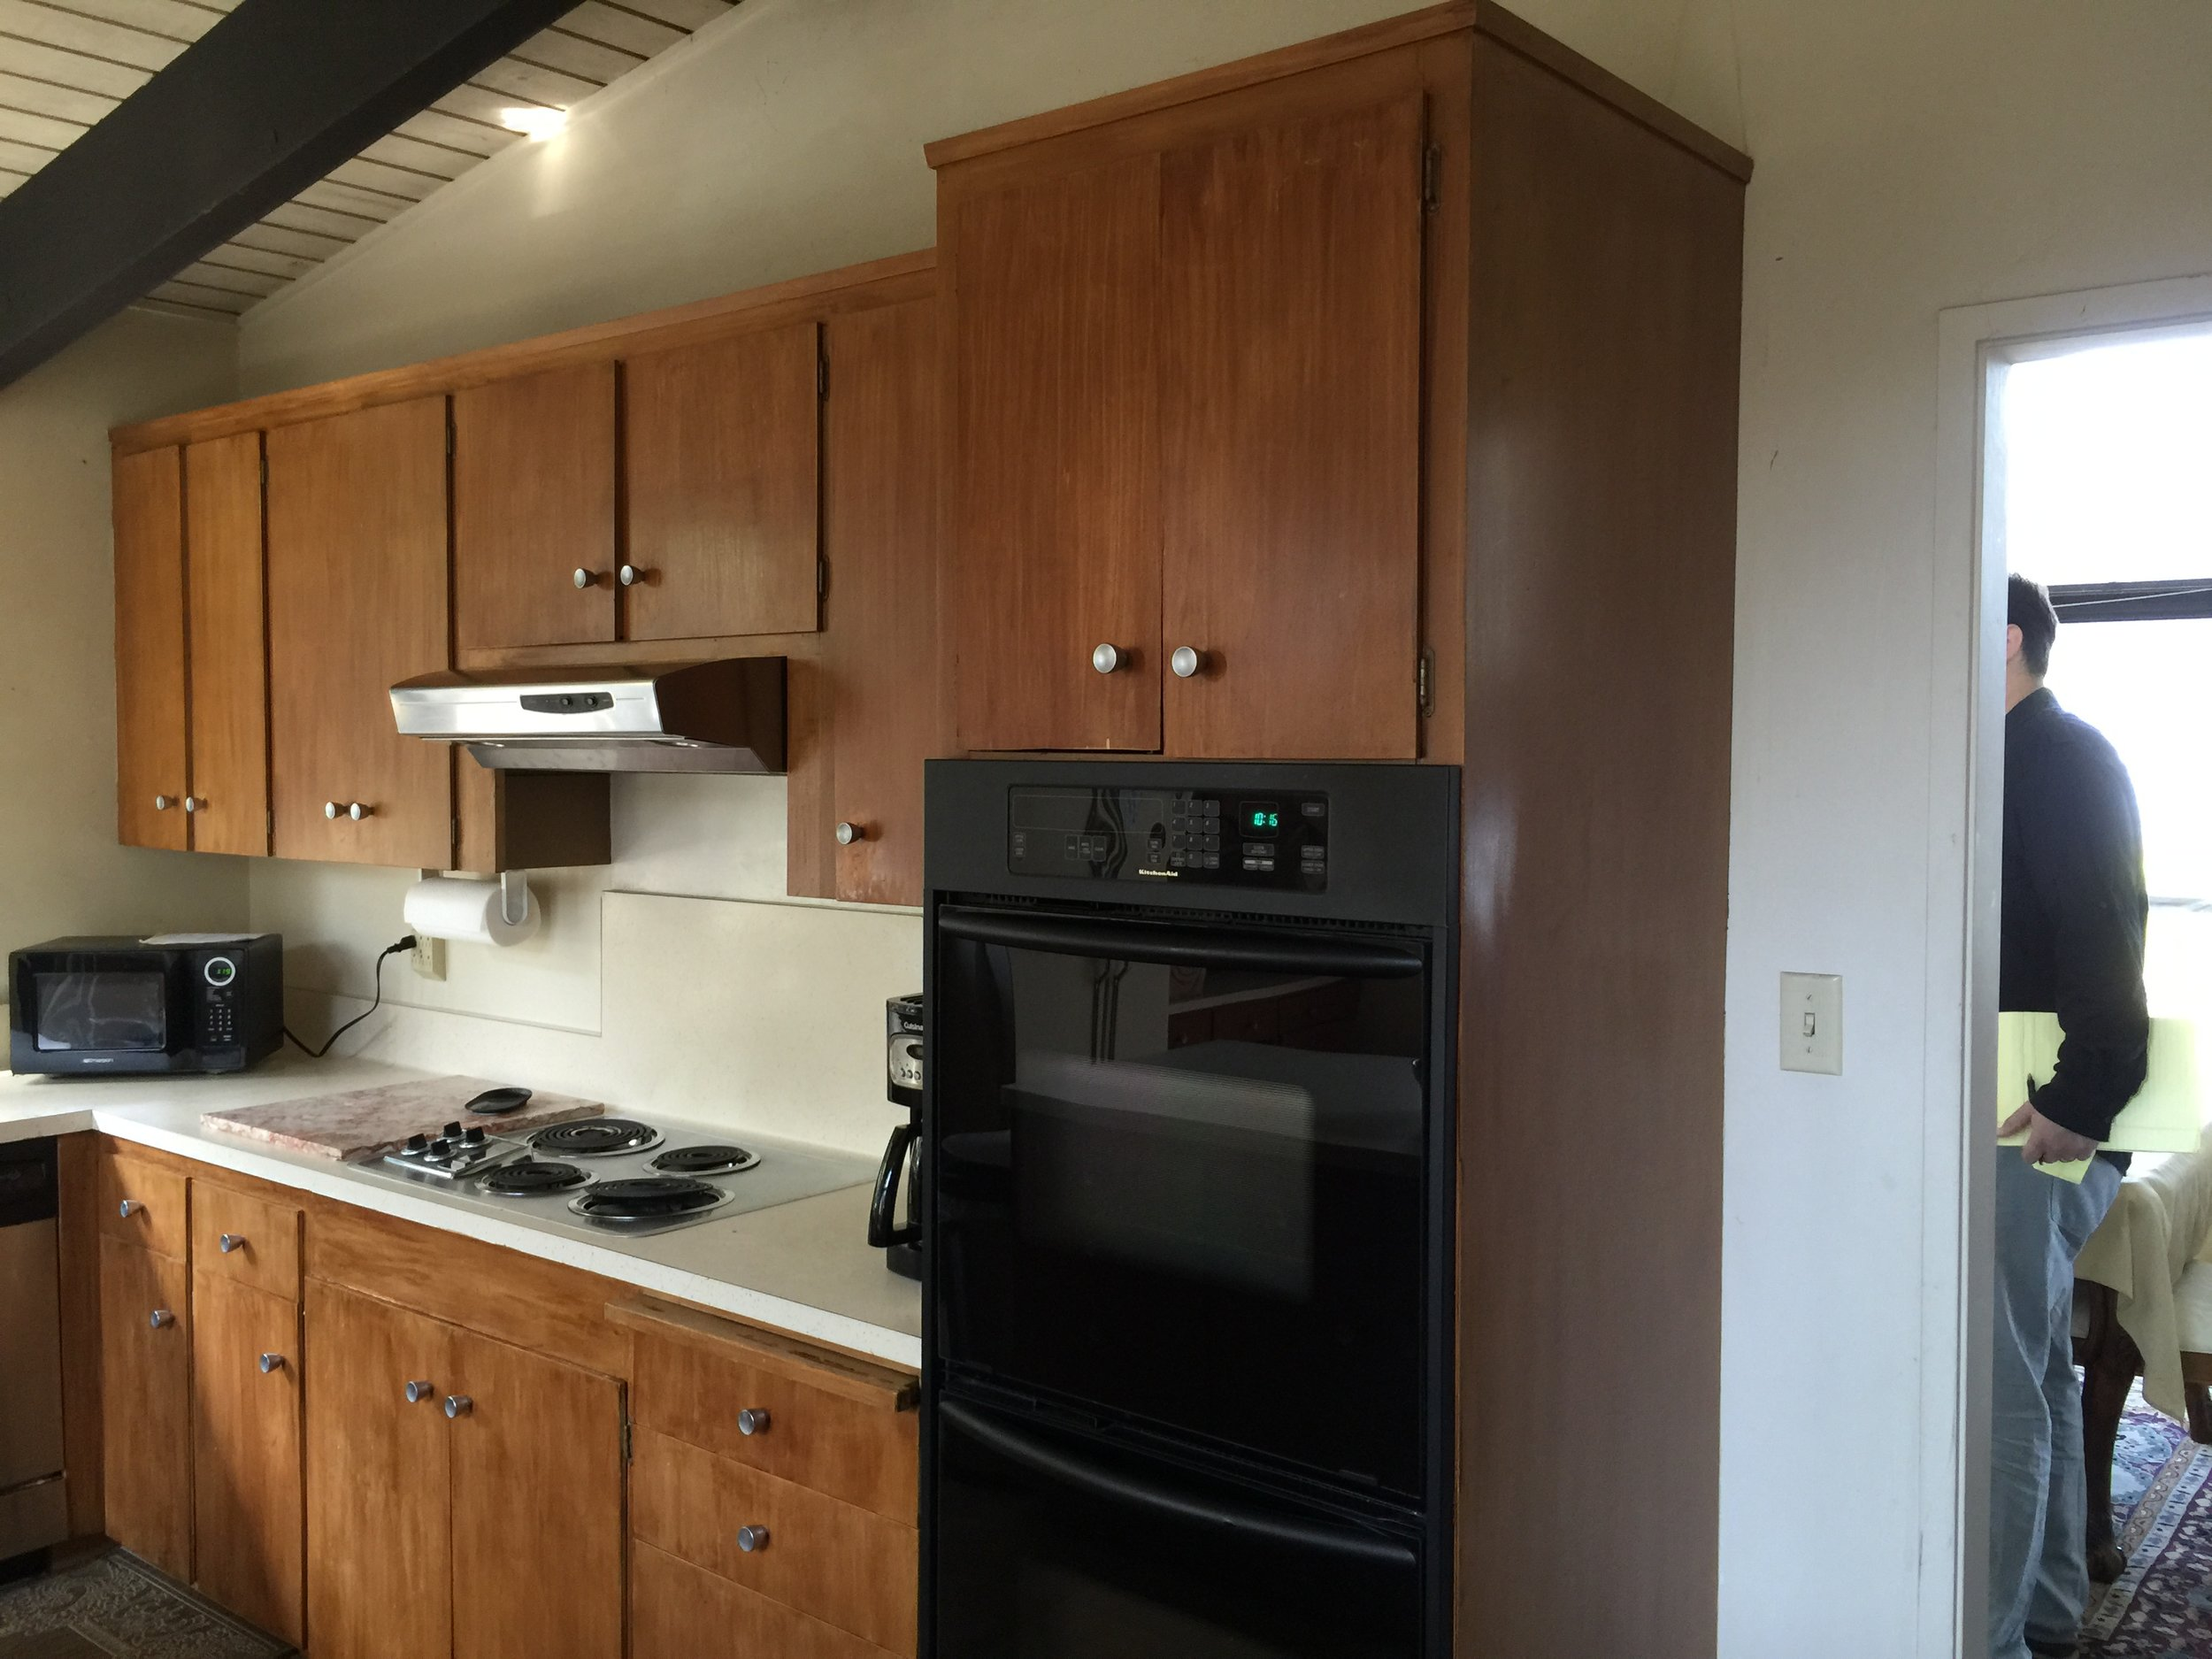 before and after kitchen renovation in Montclair